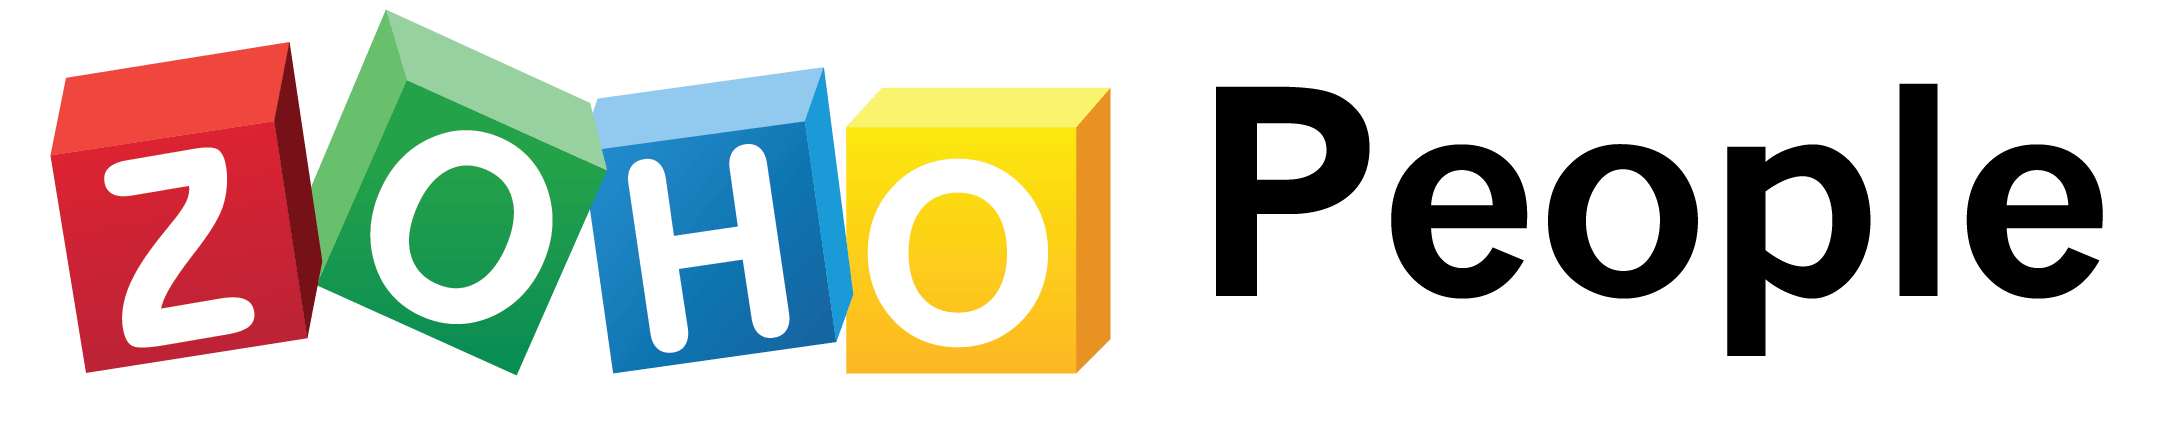 zoho-people_logo